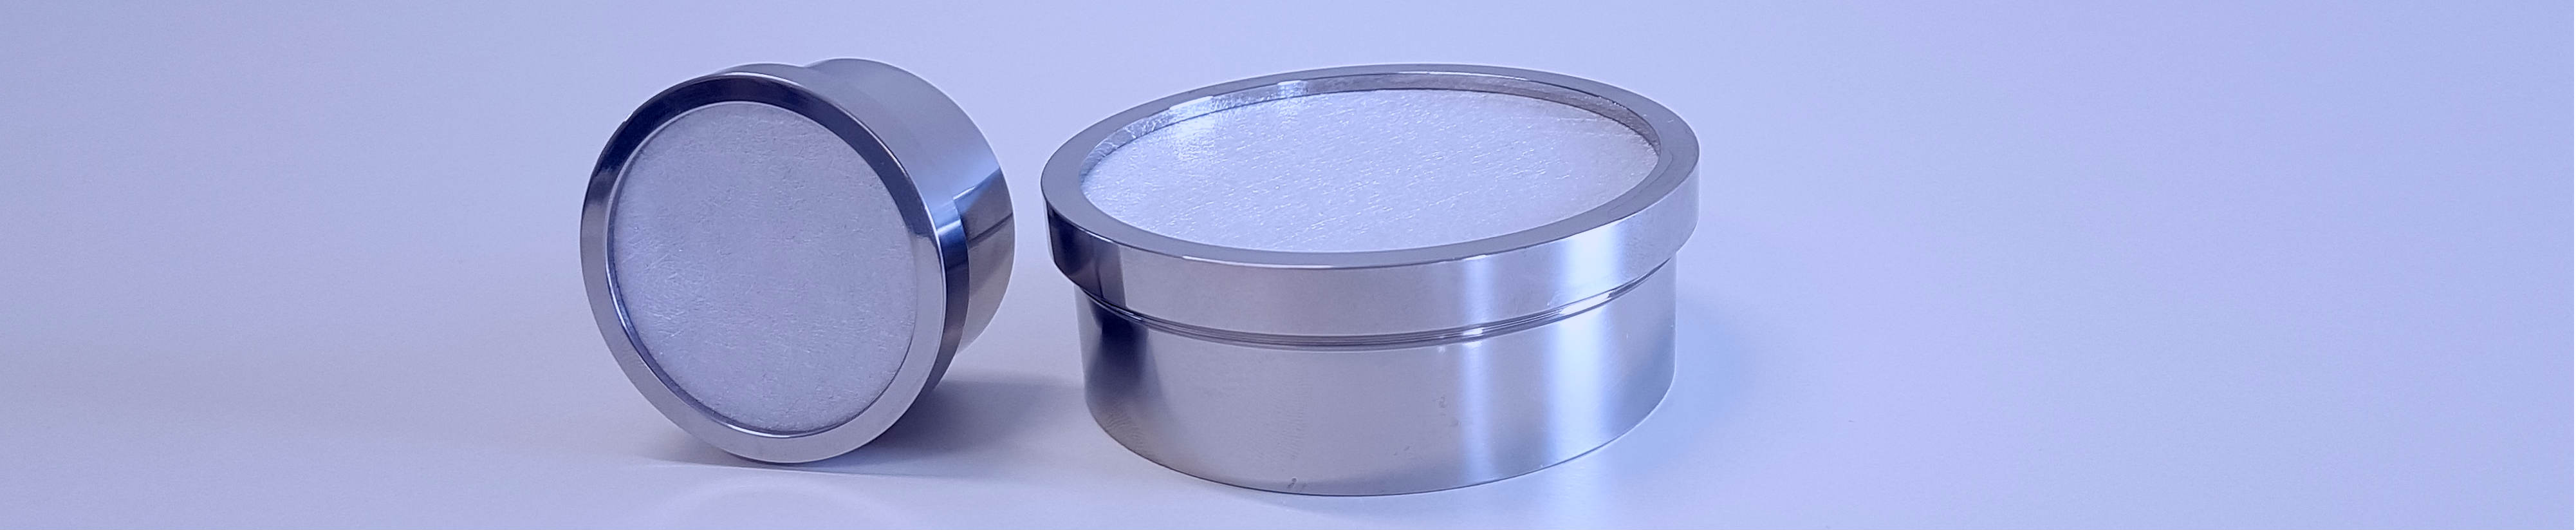 Lyoprotect Cups in stainless steel